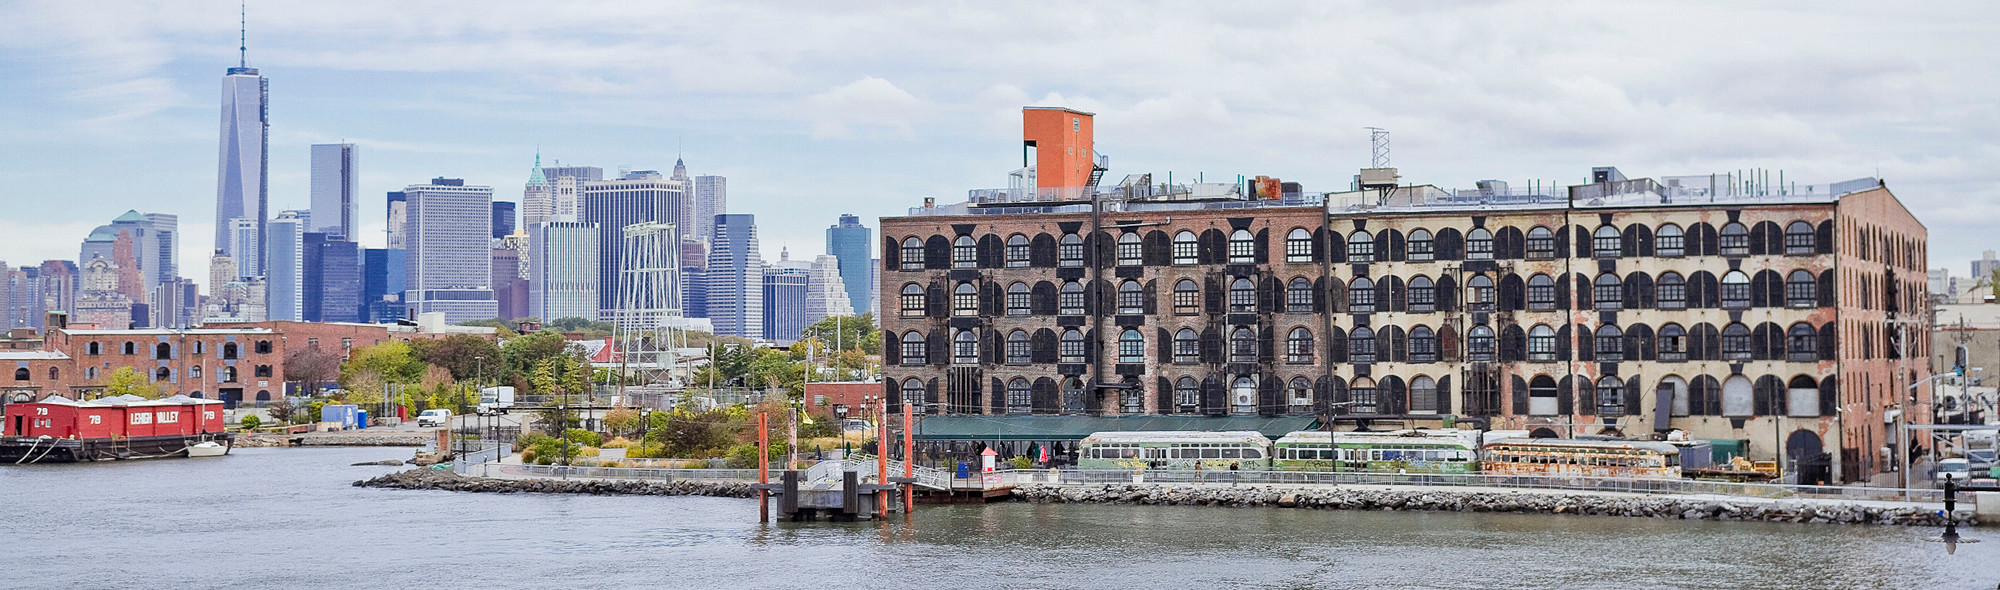 Riverside Park New York City, Red Hook Waterfront Brooklyn NYC | RedHookWaterfront.com - The O ...